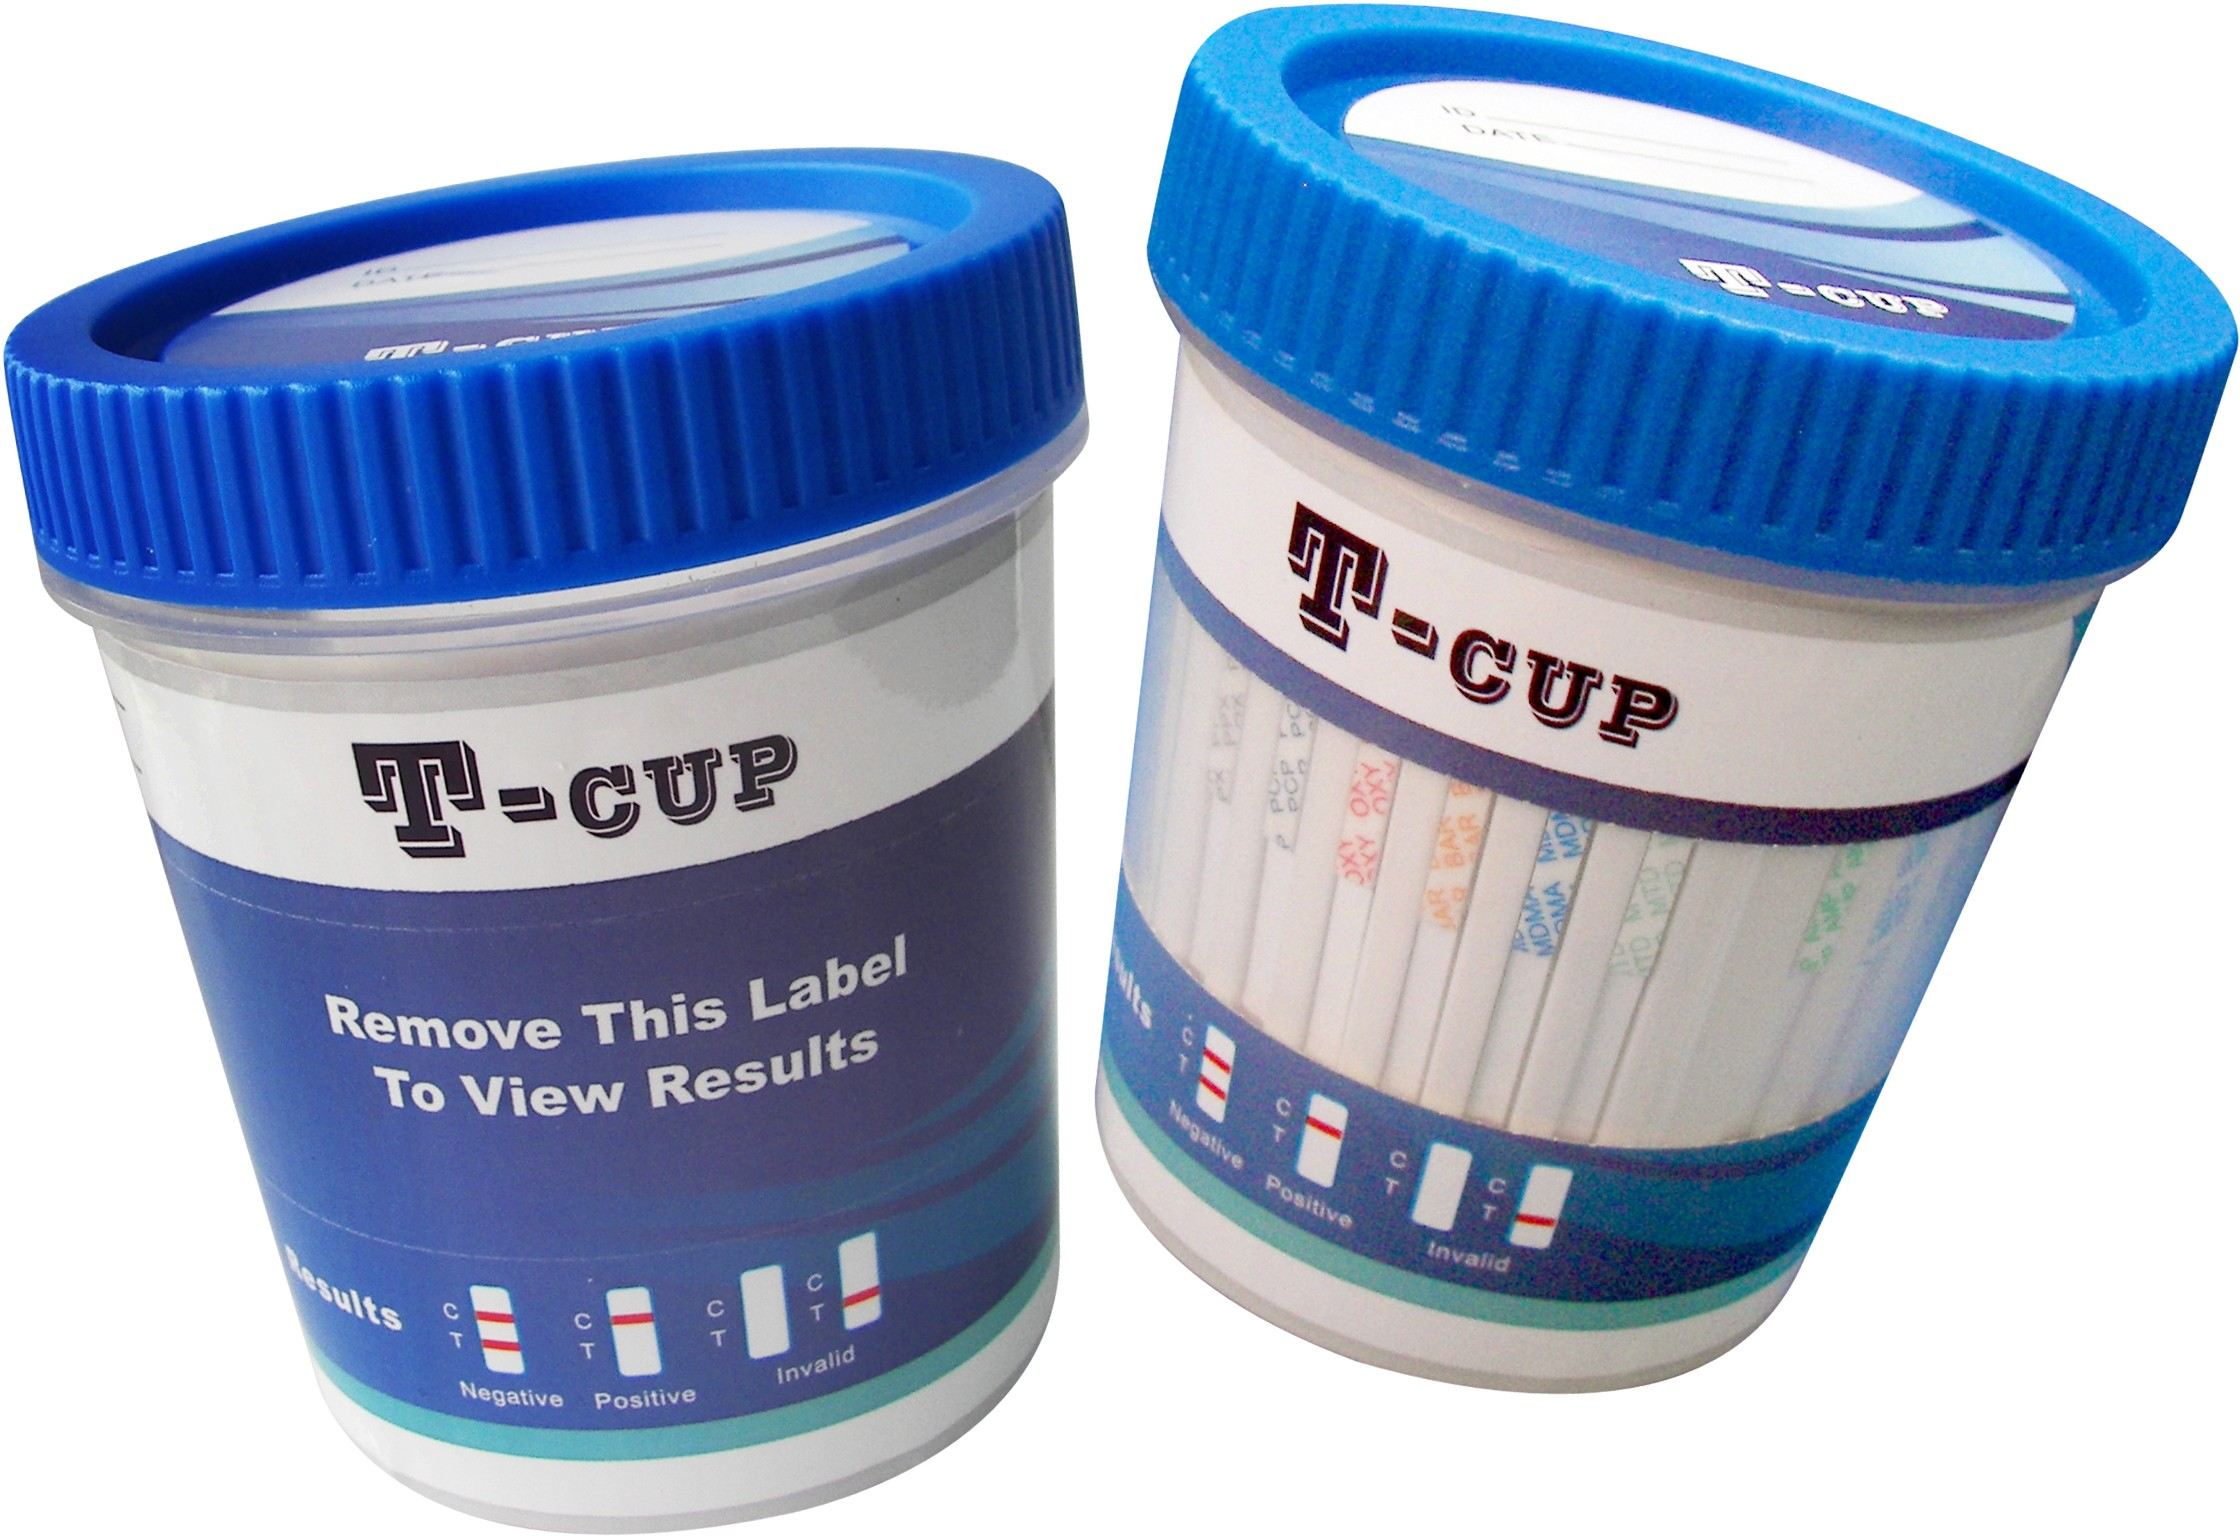 T-Cup 5 Panel Drug Screen (COC, mAMP, OPI, PCP, THC) (CLIA Waived) Box of 25